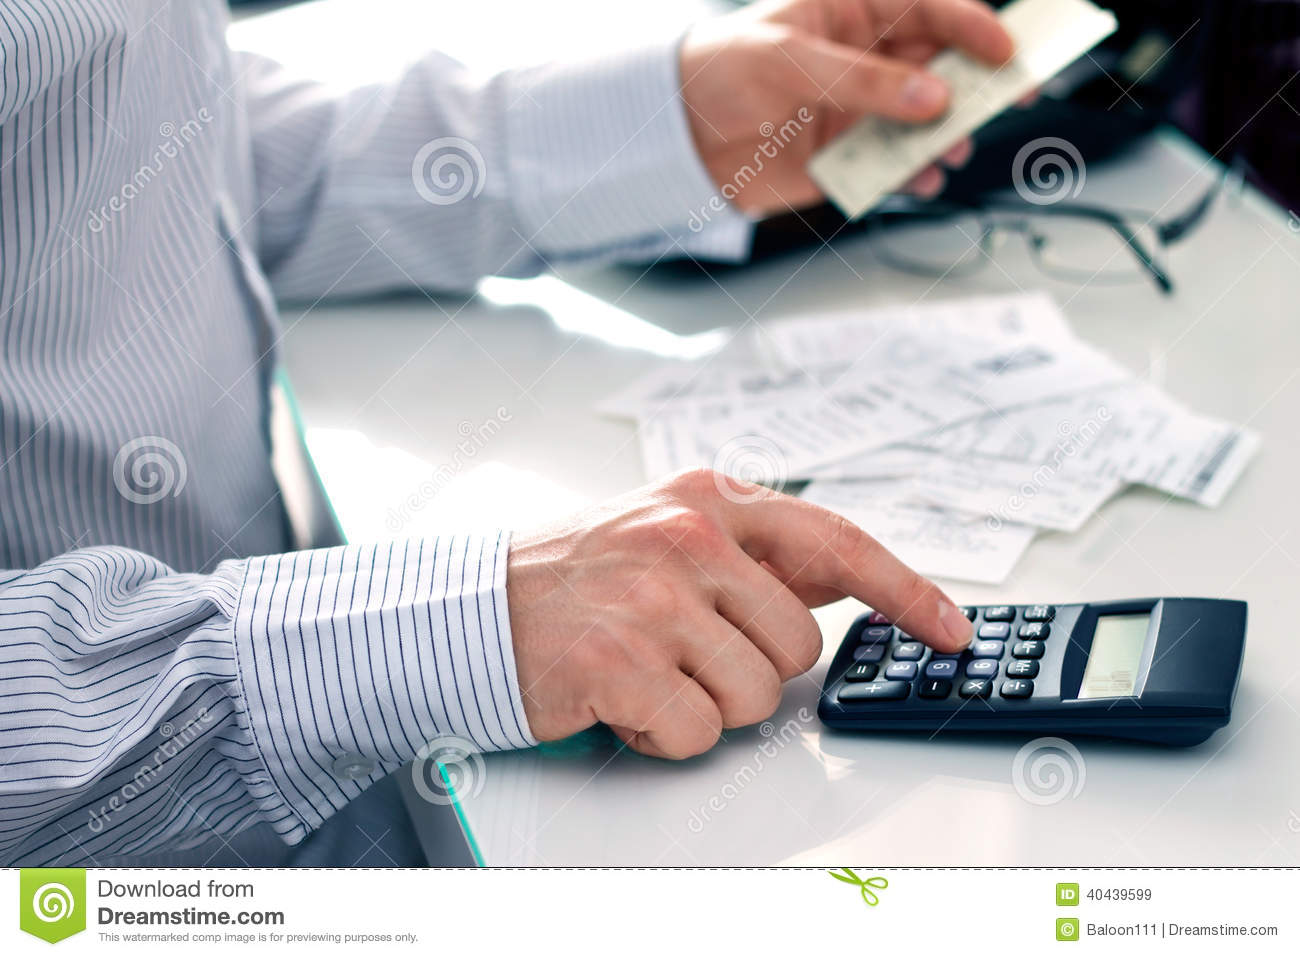 worksheet Counting Bills businessman counting bills stock photo image 40439599 royalty free download bills